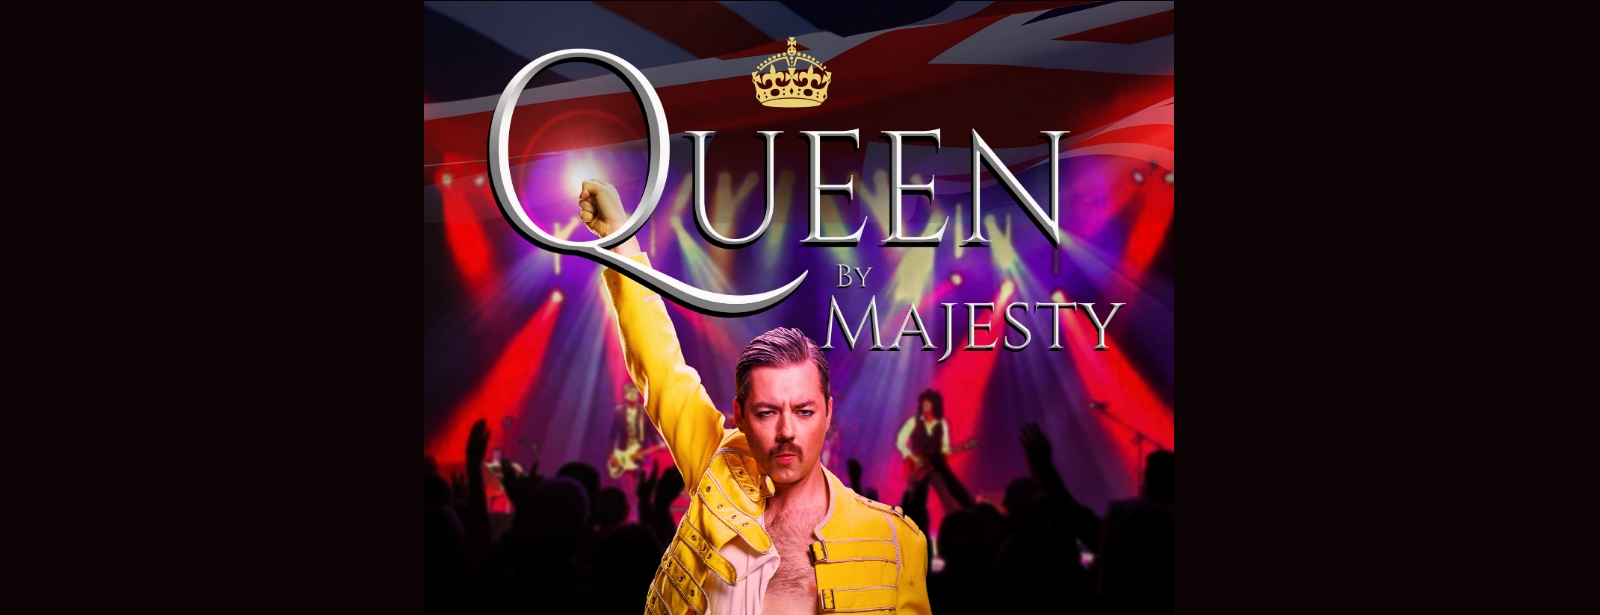 Queen - By Majesty Supper Club - 2 & 3 May